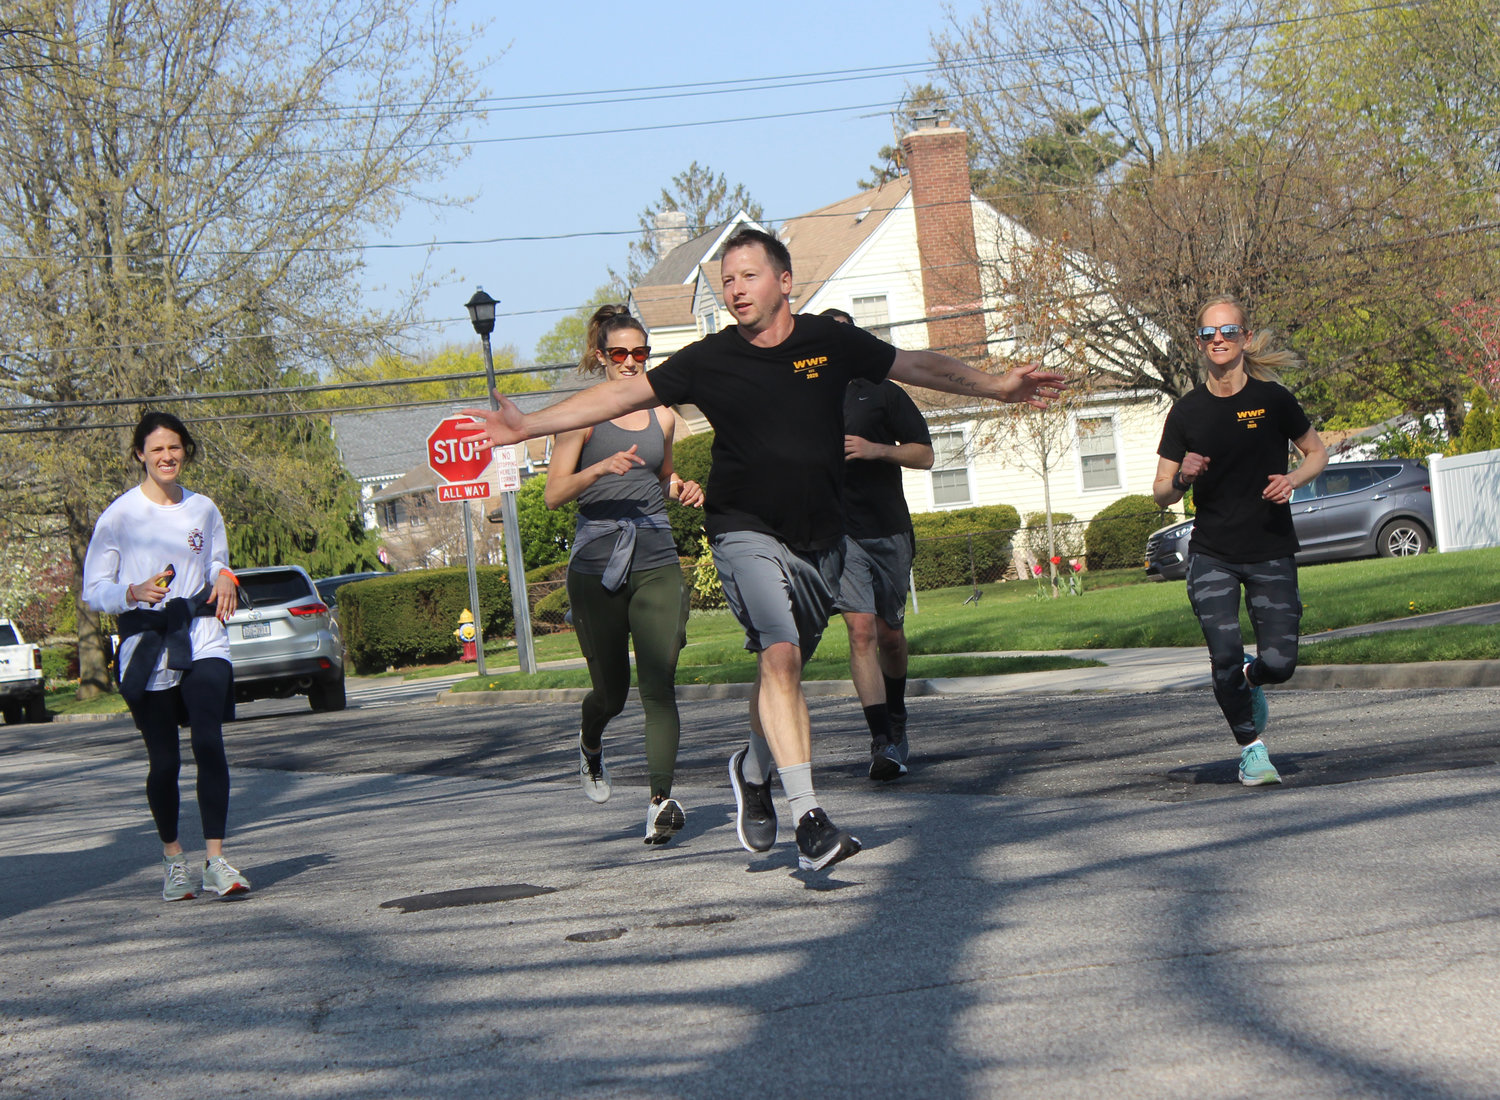 Keith Mekeel, 39, of Wantagh, led a group of runners toward the finish line.